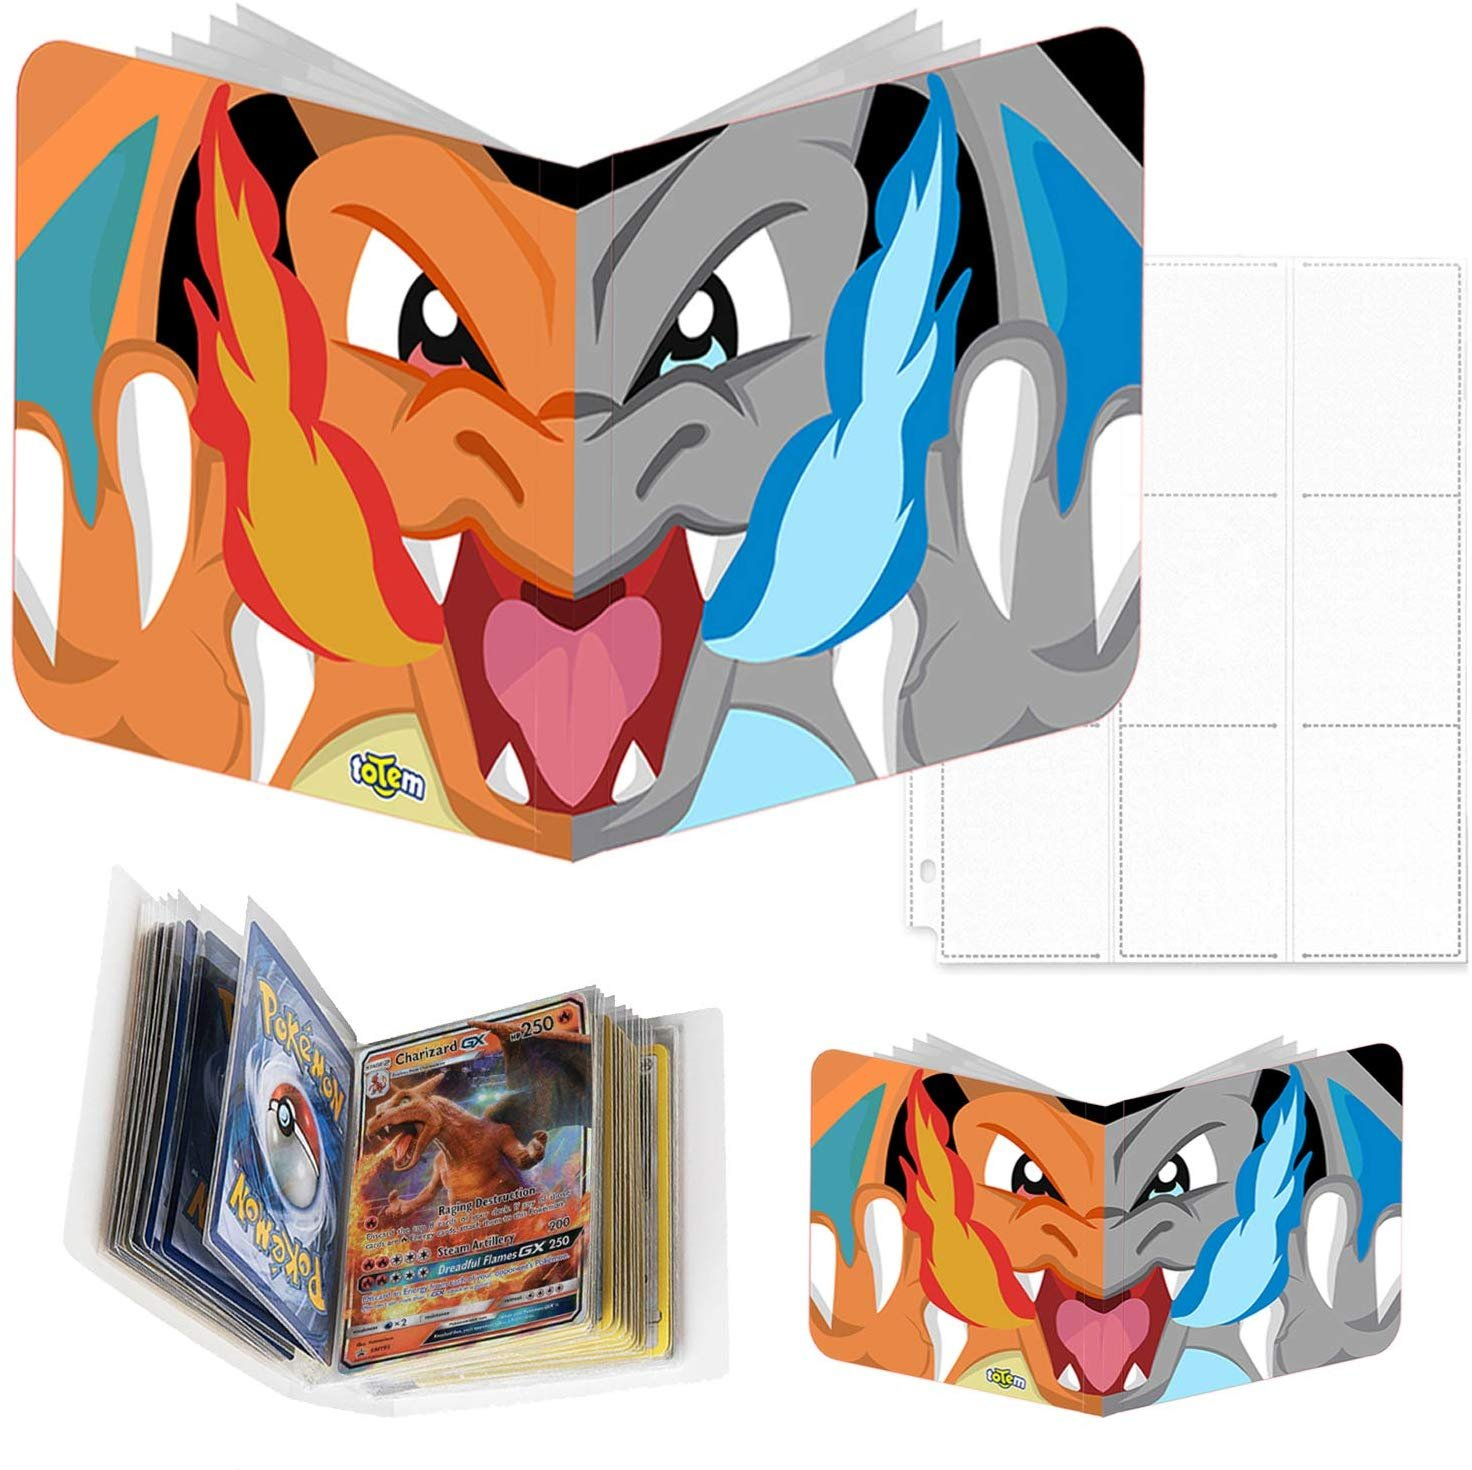 Totem World Mega Charizard X & Y Inspired 3-Ring Binder with 25 9-Pocket  Pages and a Mini Binder Collectors Album for Pokemon Cards - Walmart.com -  Walmart.com